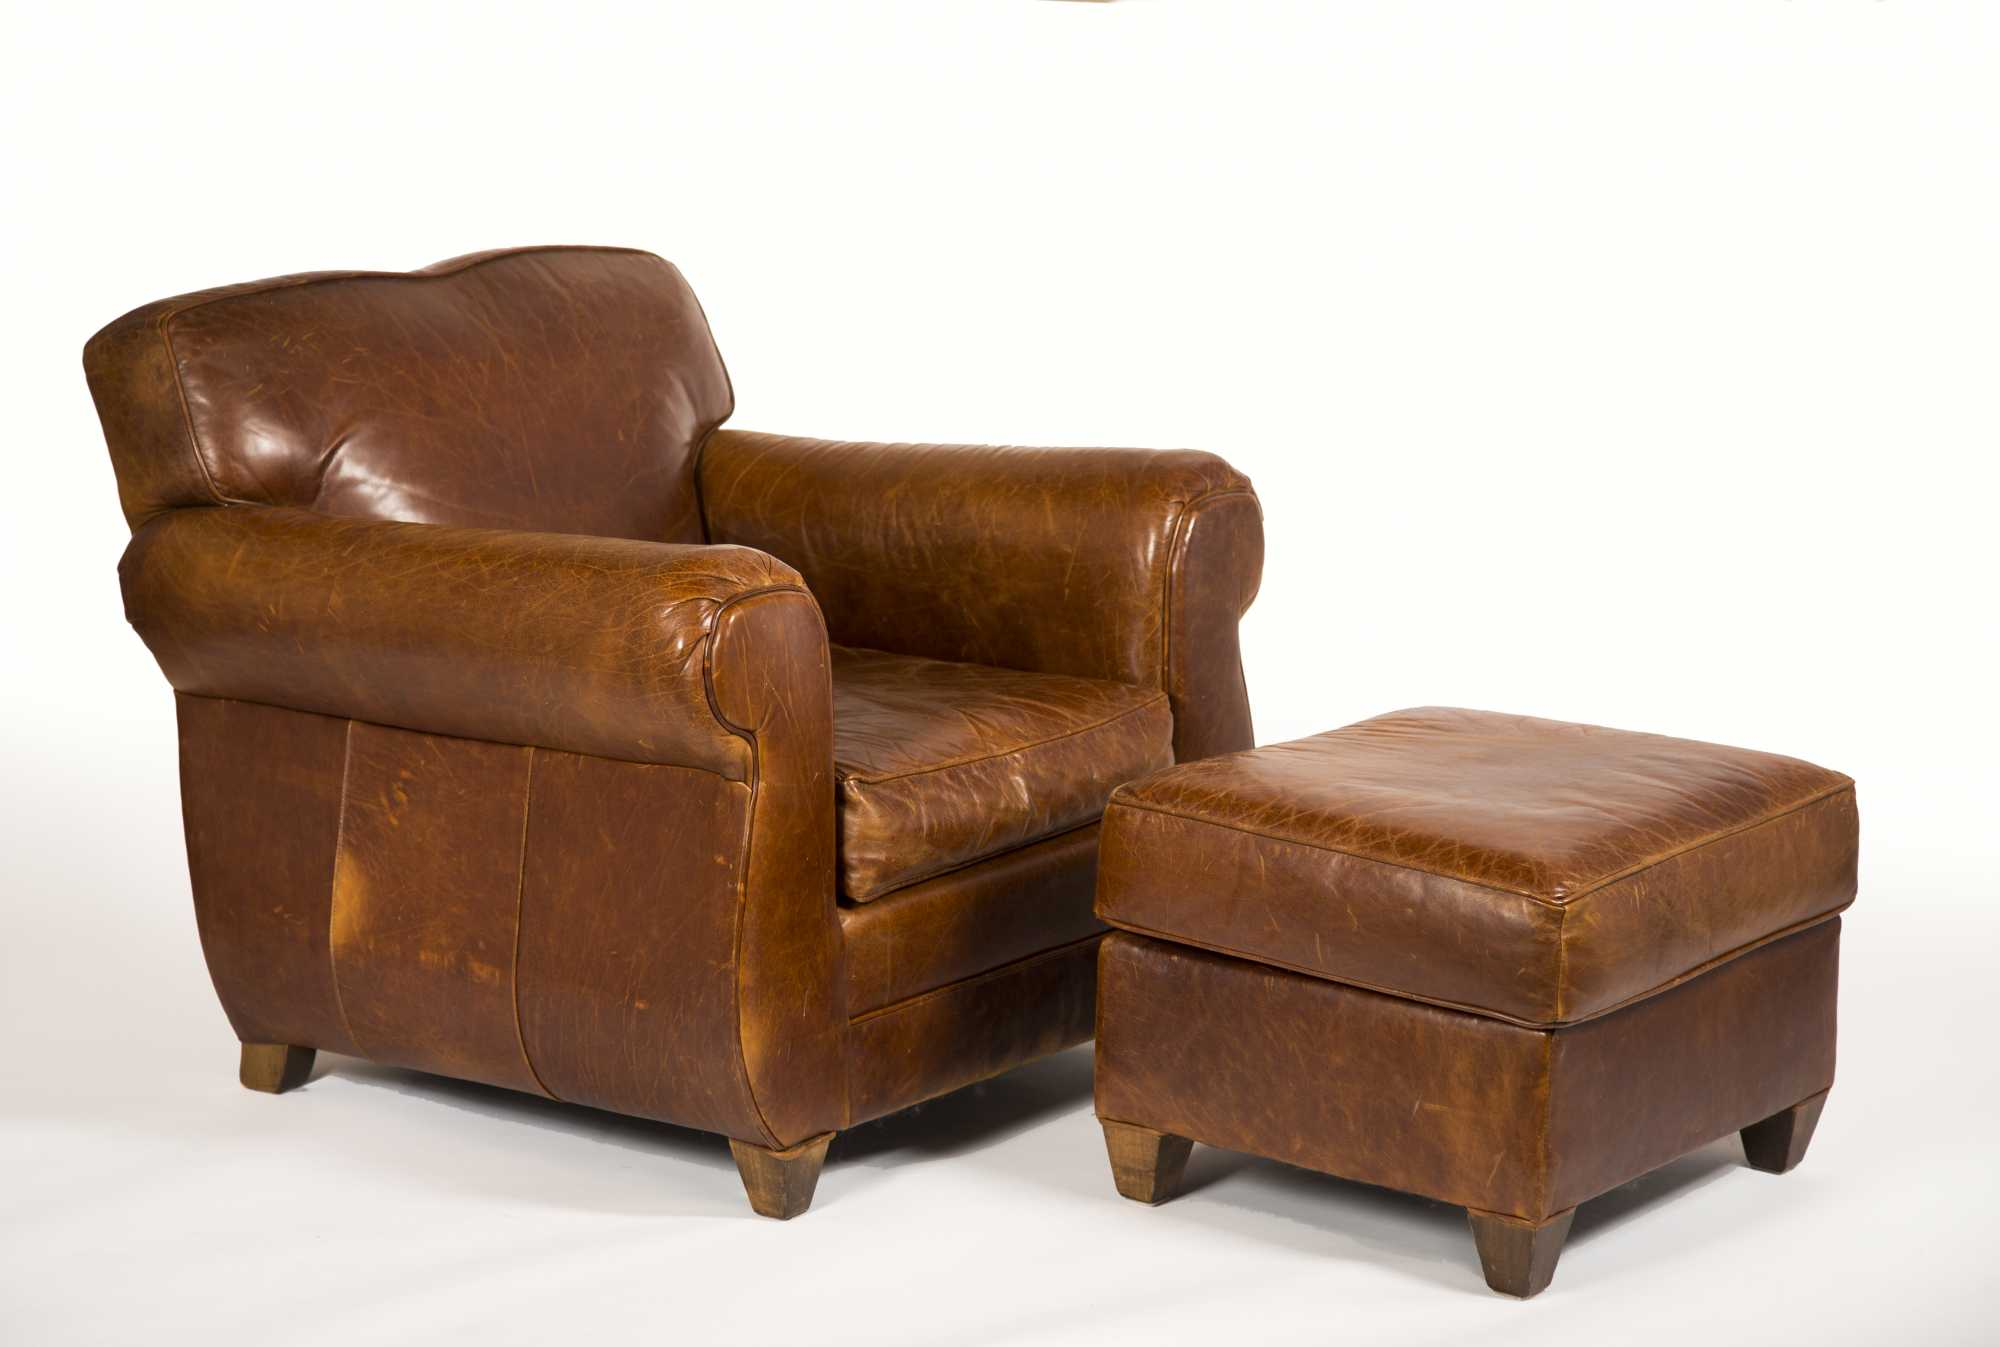 Leather Armchair and Ottoman made by  Mitchell Gold  especially for  Restoration Hardware   sc 1 st  The Cobbs Auctioneers & Leather Armchair and Ottoman made by